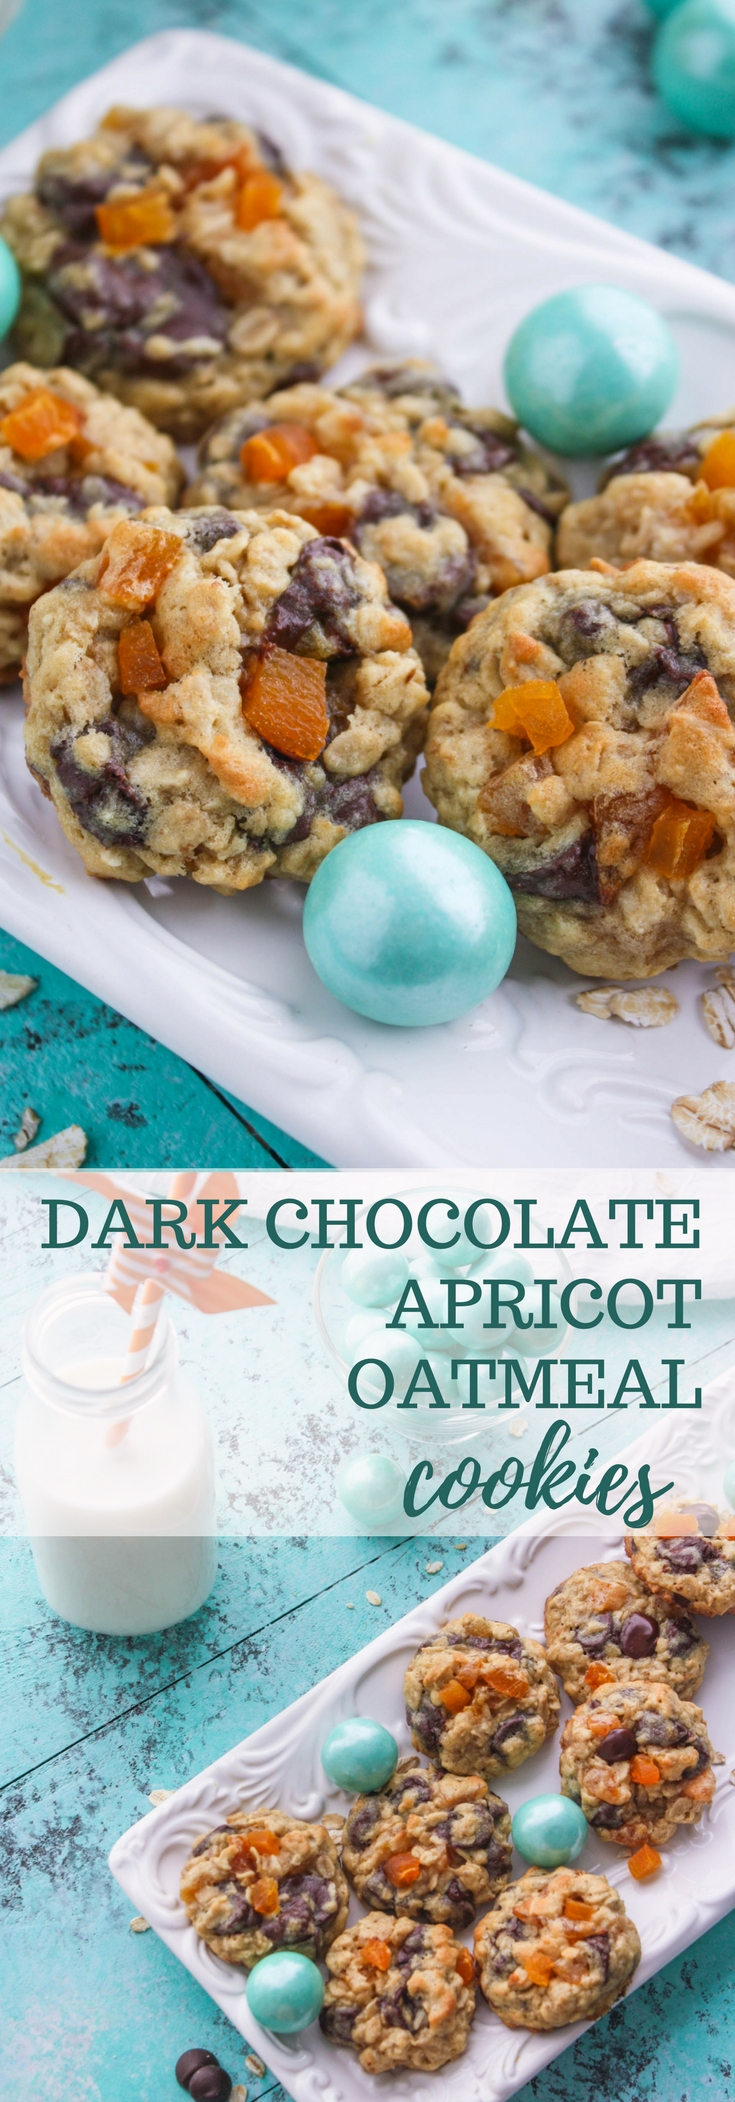 Dark Chocolate Apricot Oatmeal Cookies are chewy and loaded with goodies! Dark Chocolate Apricot Oatmeal Cookies are tasty cookies to sink your teeth into! Yum!